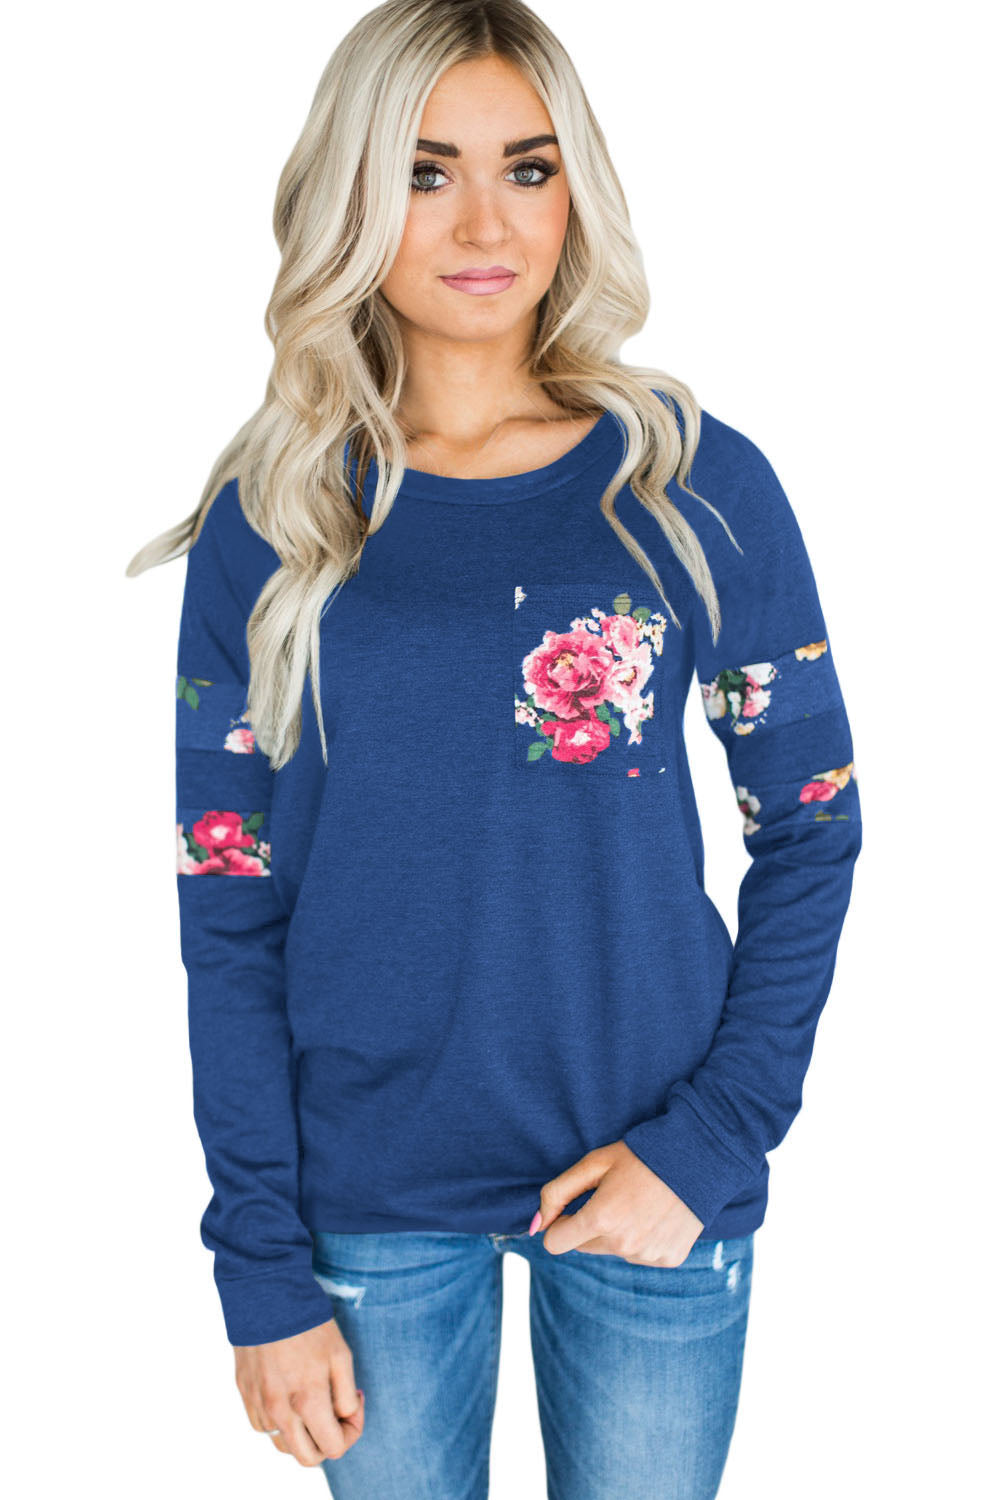 Chicloth Floral Patch Accent Navy Sweatshirt - M / Blue